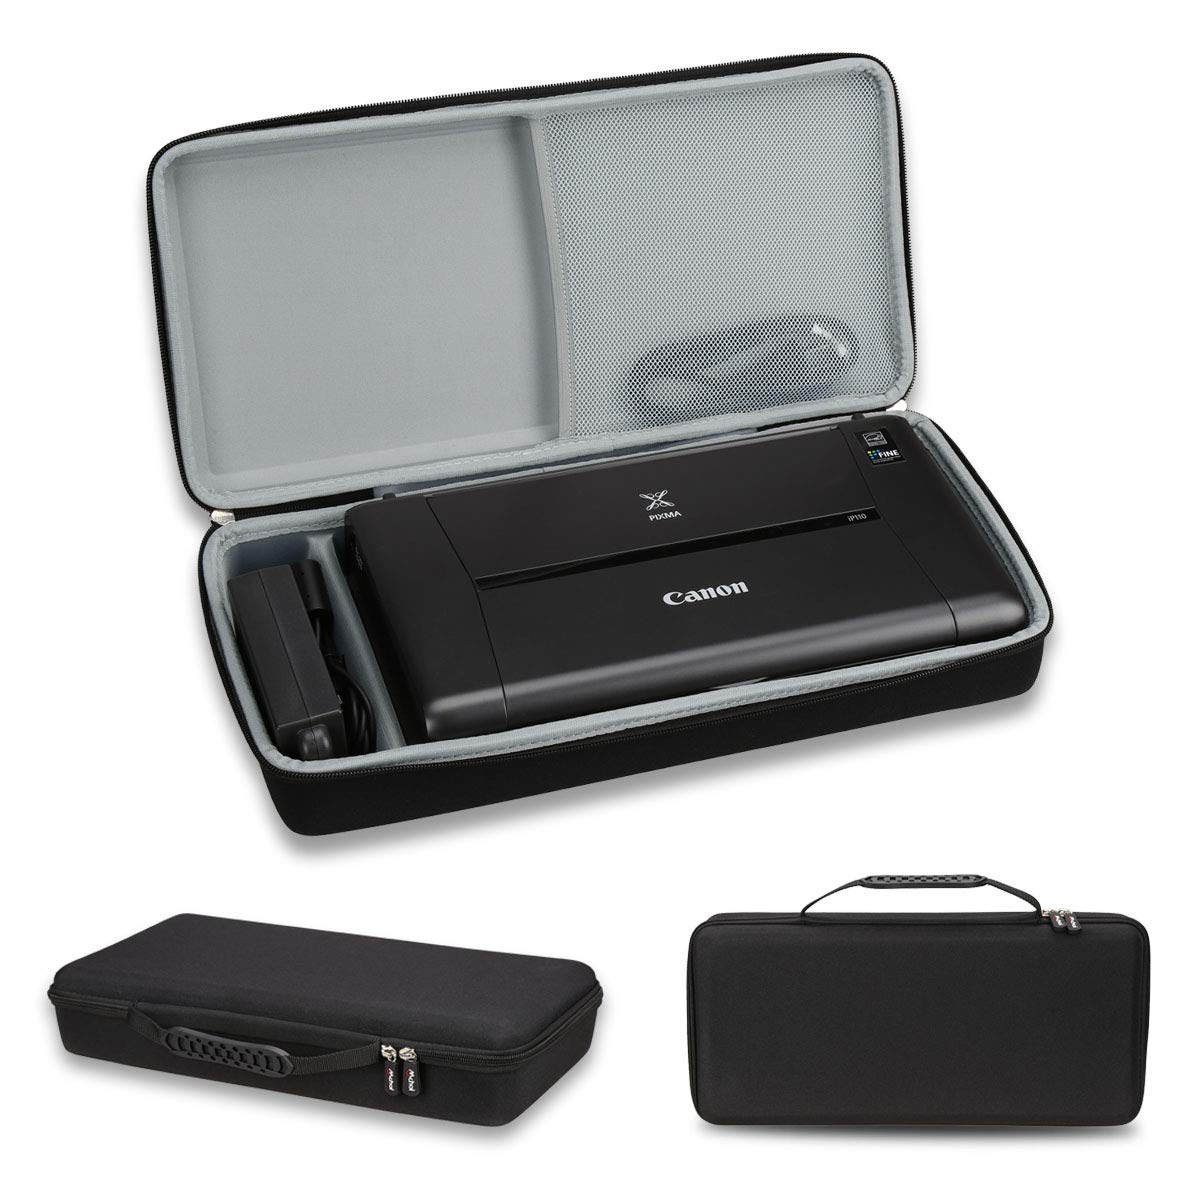 Mchoi Hard Portable Case Fits for Canon PIXMA iP110 Mobile Printer by Mchoi (Image #1)